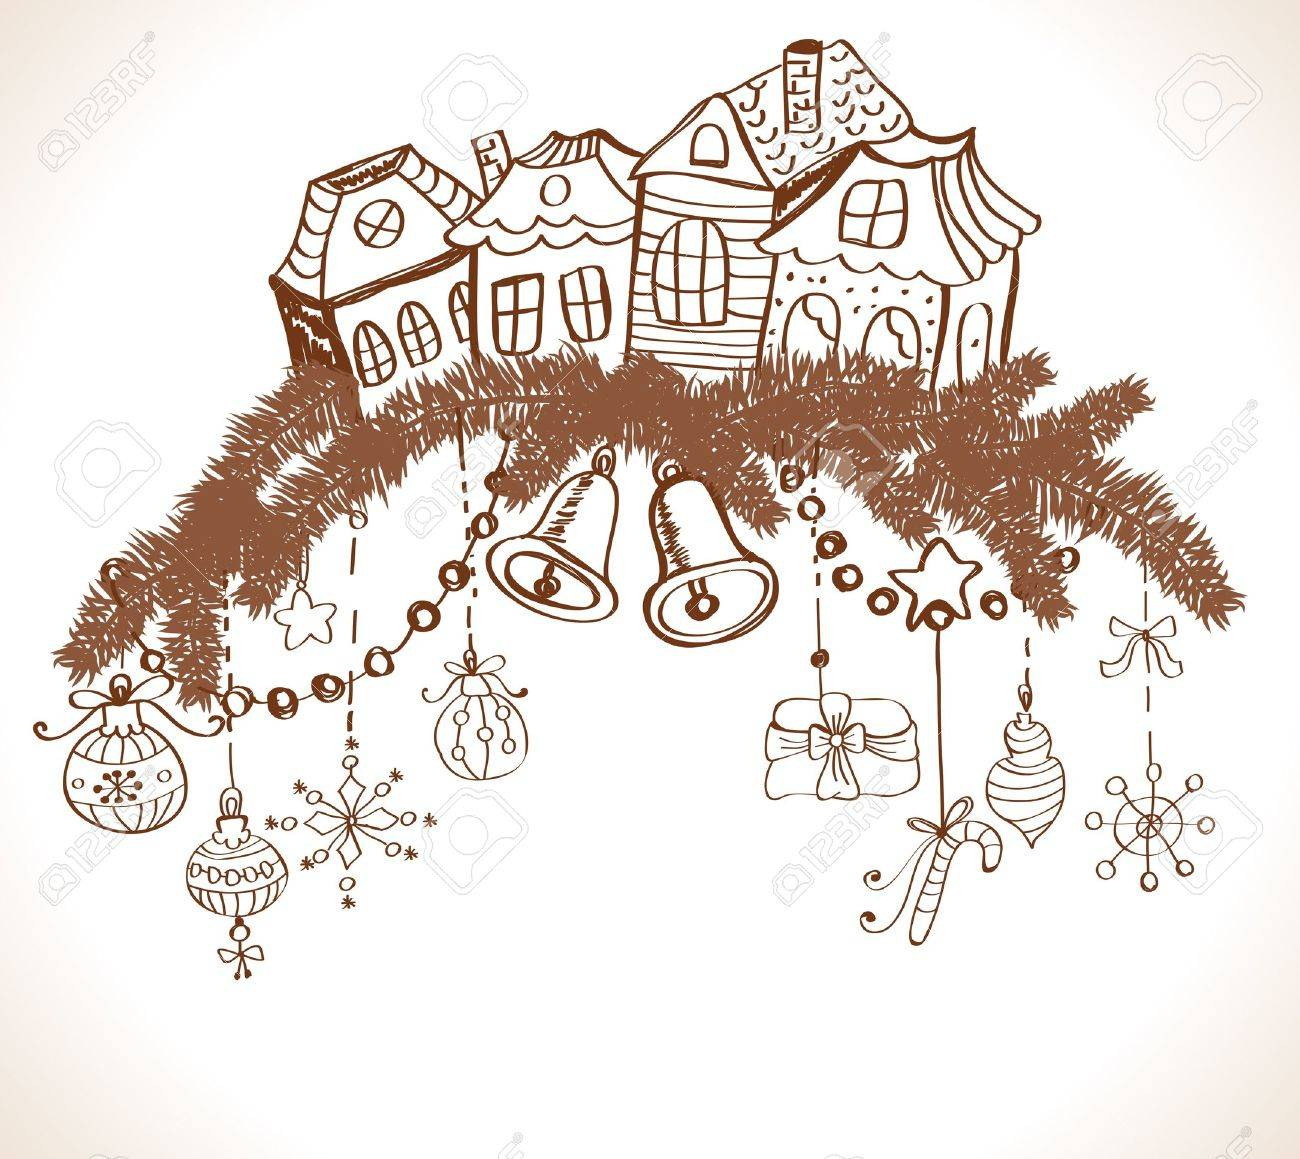 christmas card for xmas design with fur tree, houses and decorations, illustration Stock Vector - 16083286